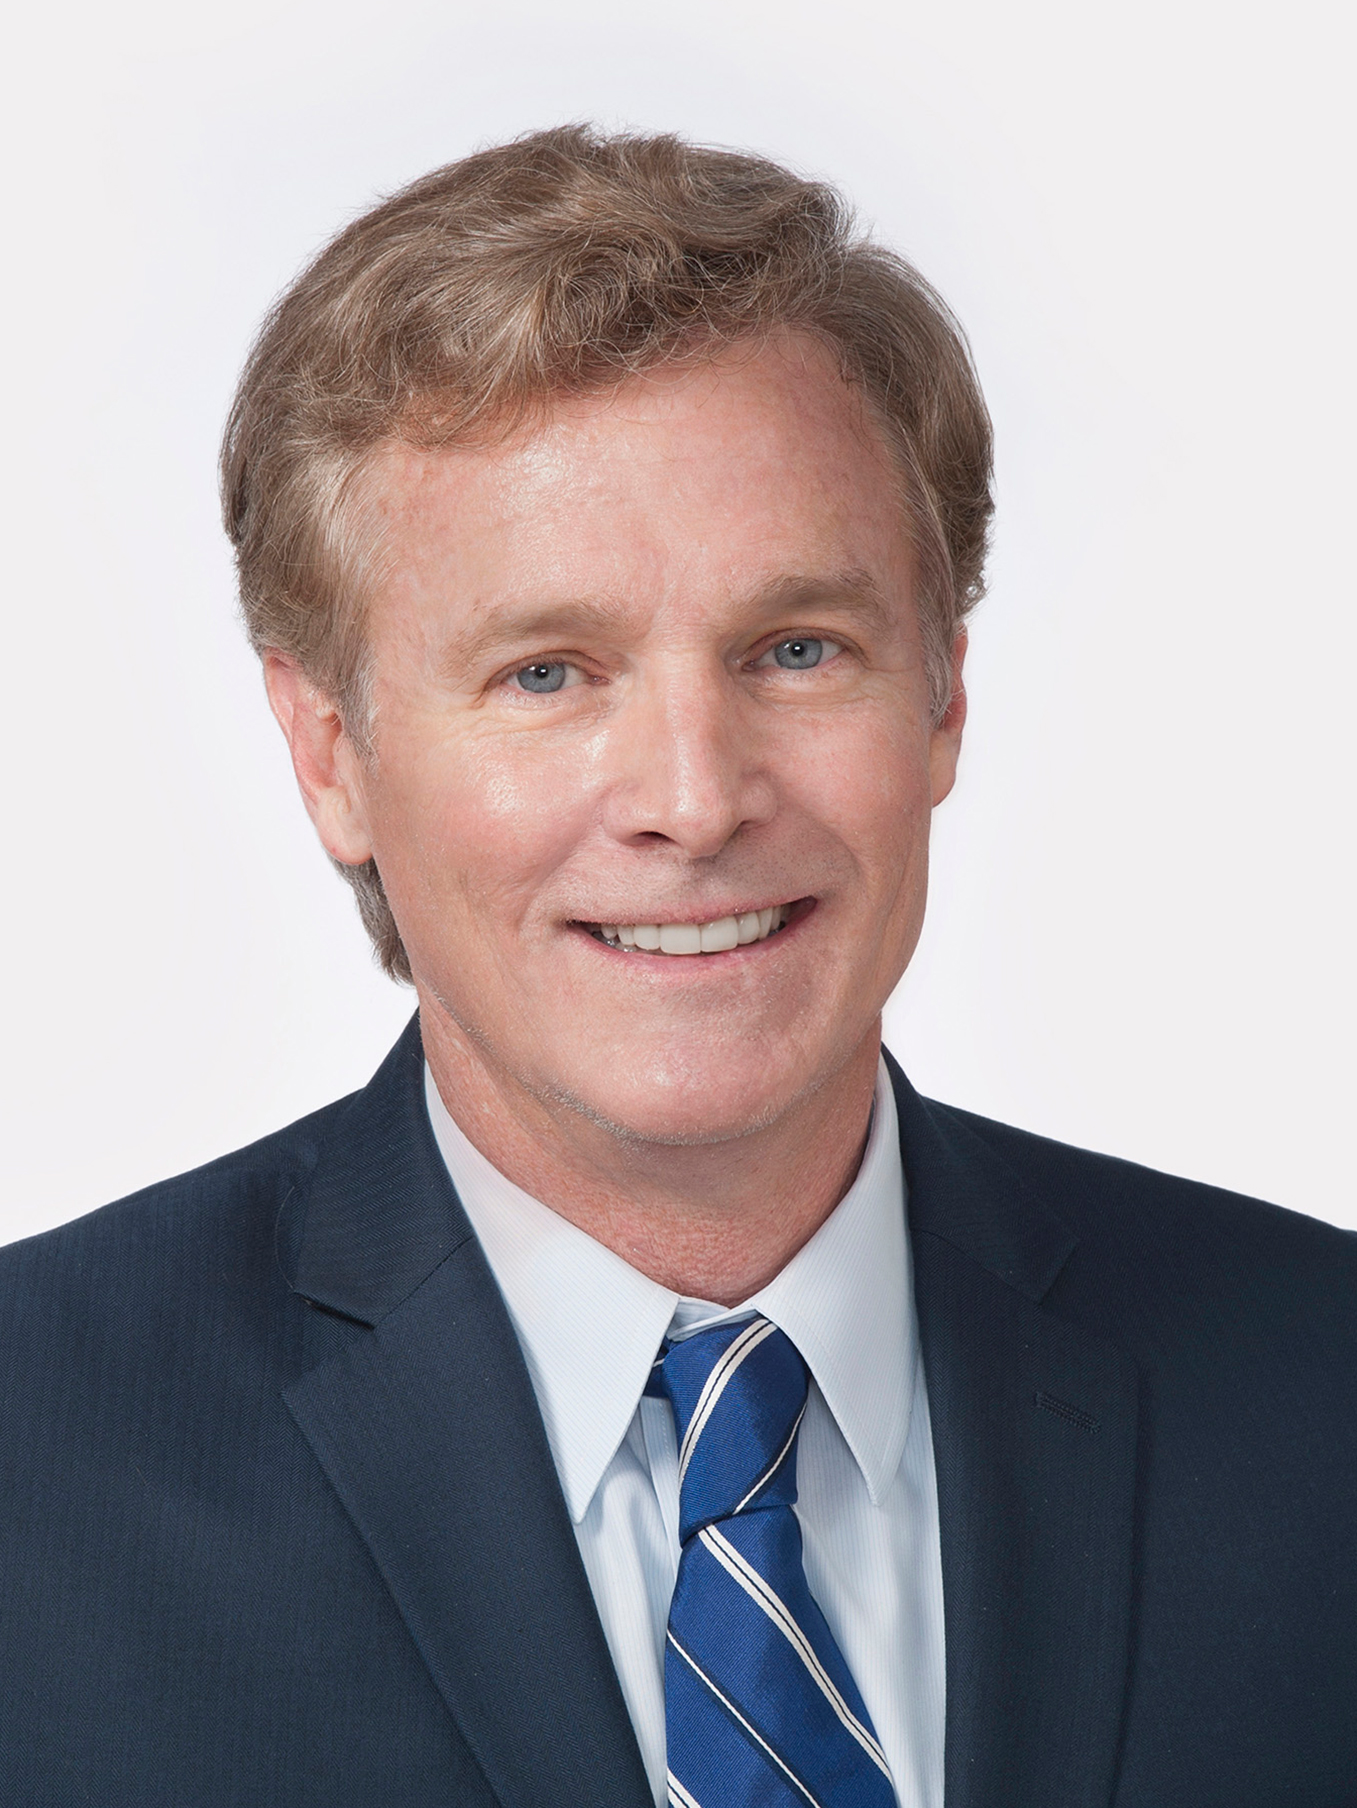 Donald L. Hagan, CFA, Partner, Co-founder, and Chief Investment Strategist for Day Hagan Asset Management in Sarasota, FL.